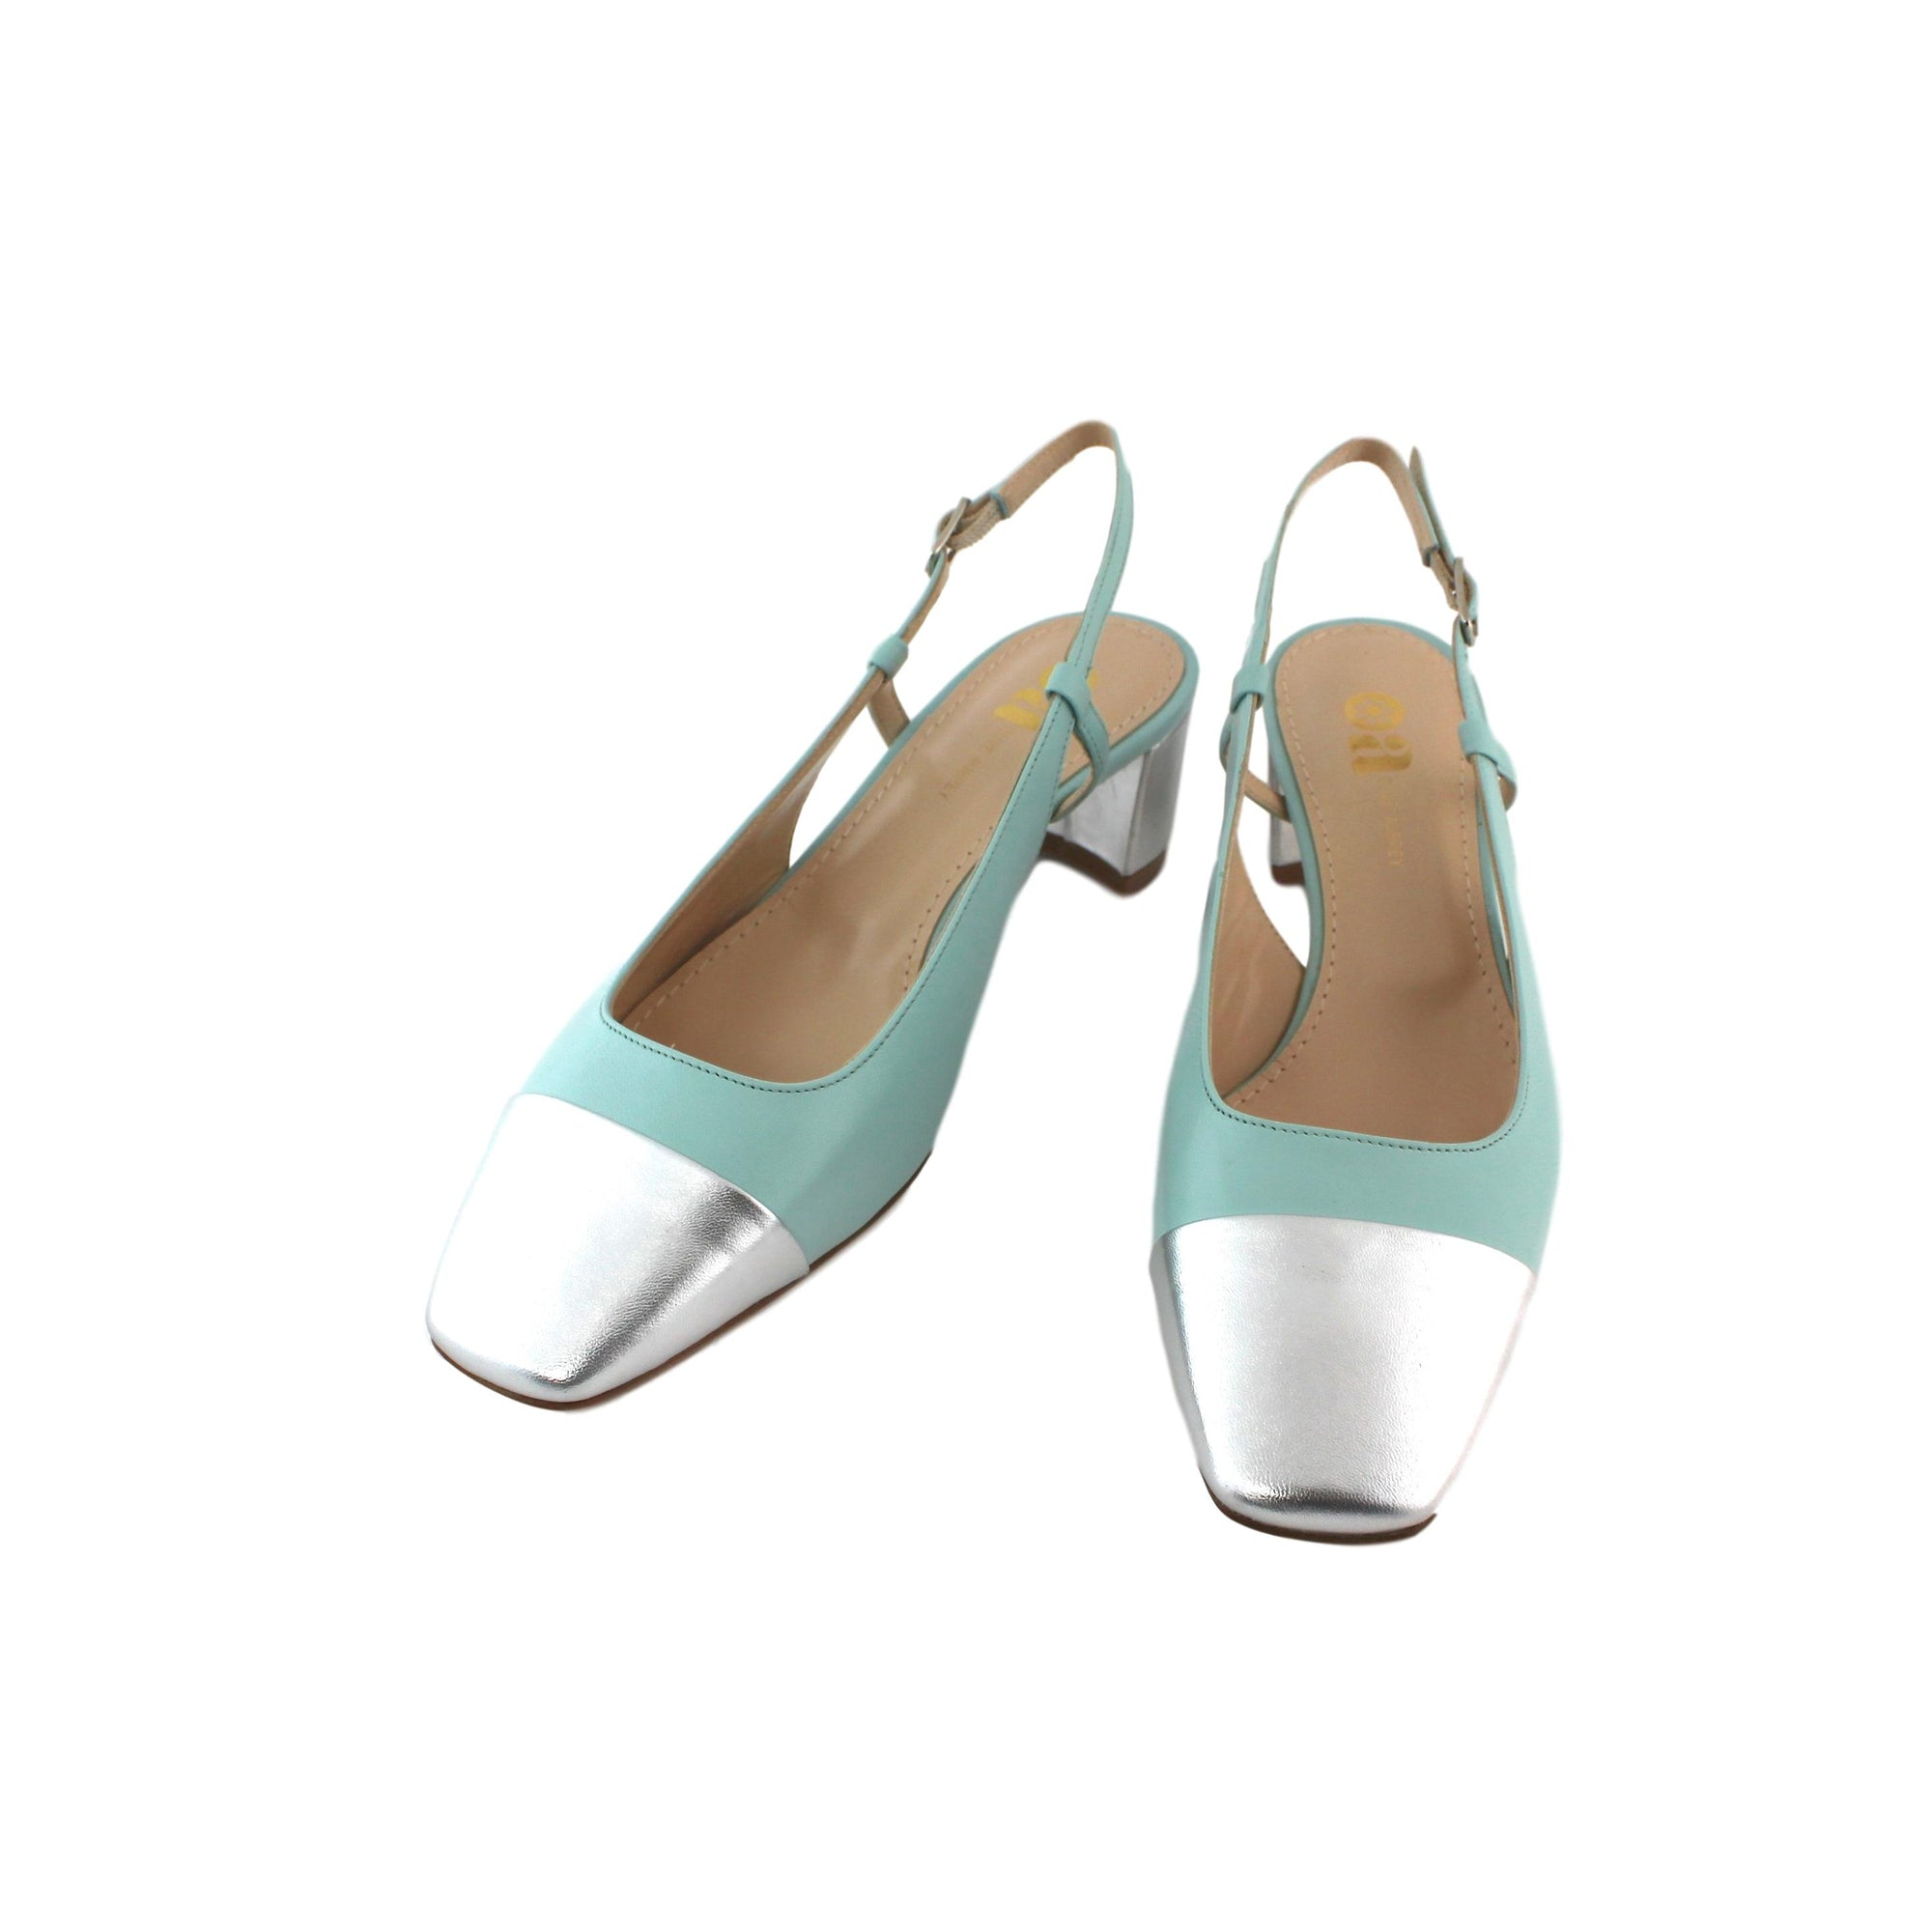 Tiffany aqua blue slingback shoe, nappa leather with silver toe and heel